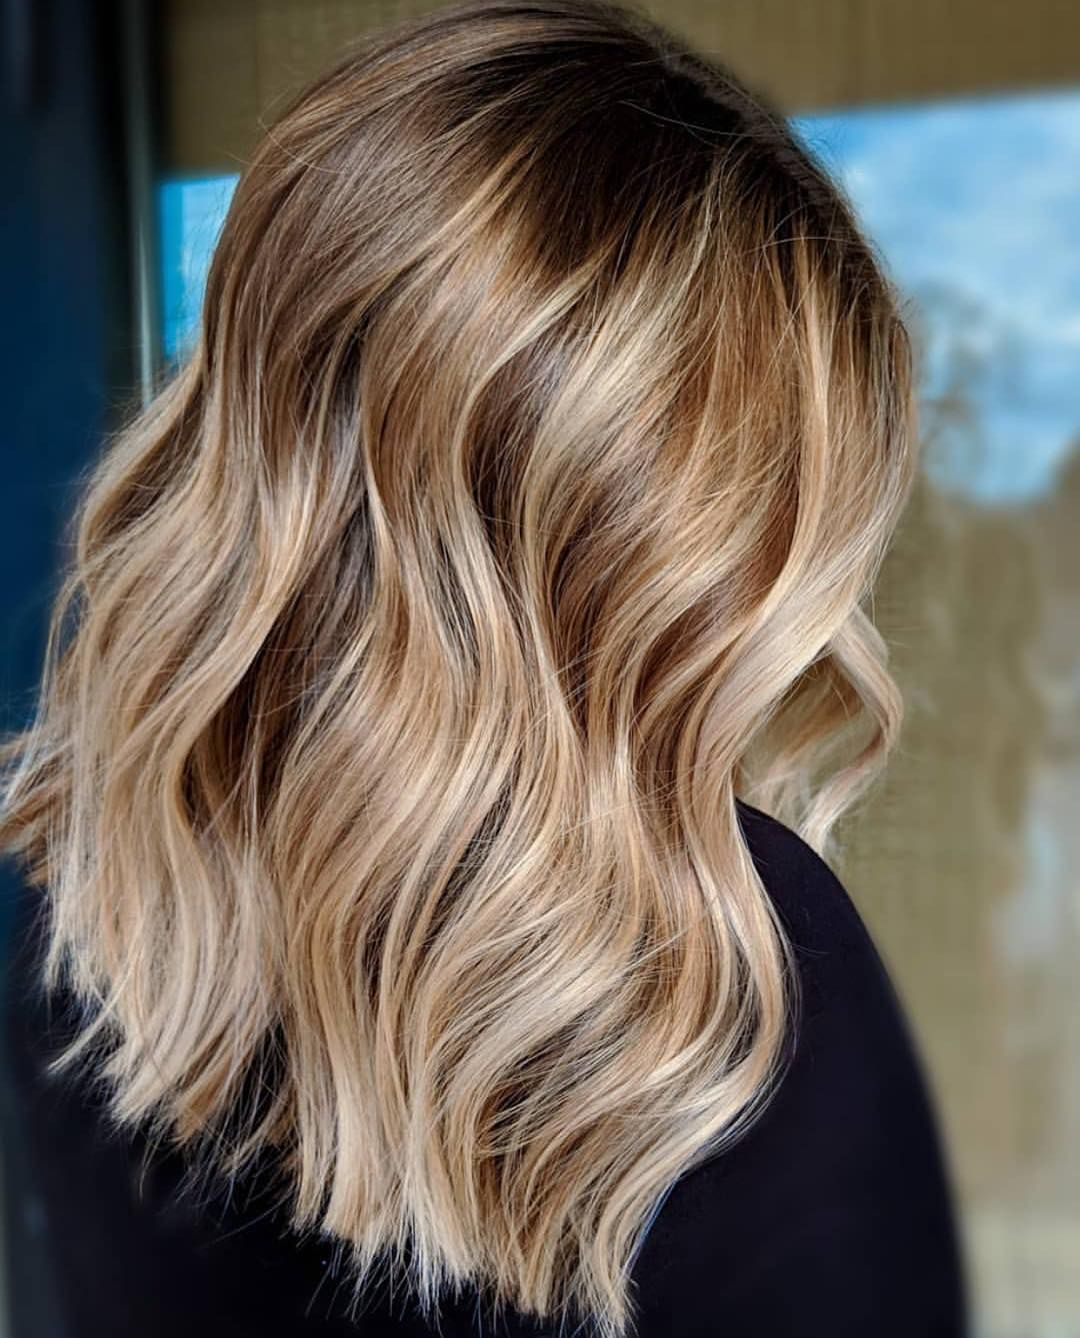 Hairstyles For Women Fall 2019 Hairstyles Pictures Hair Styles Cool Hairstyles Balayage Hair